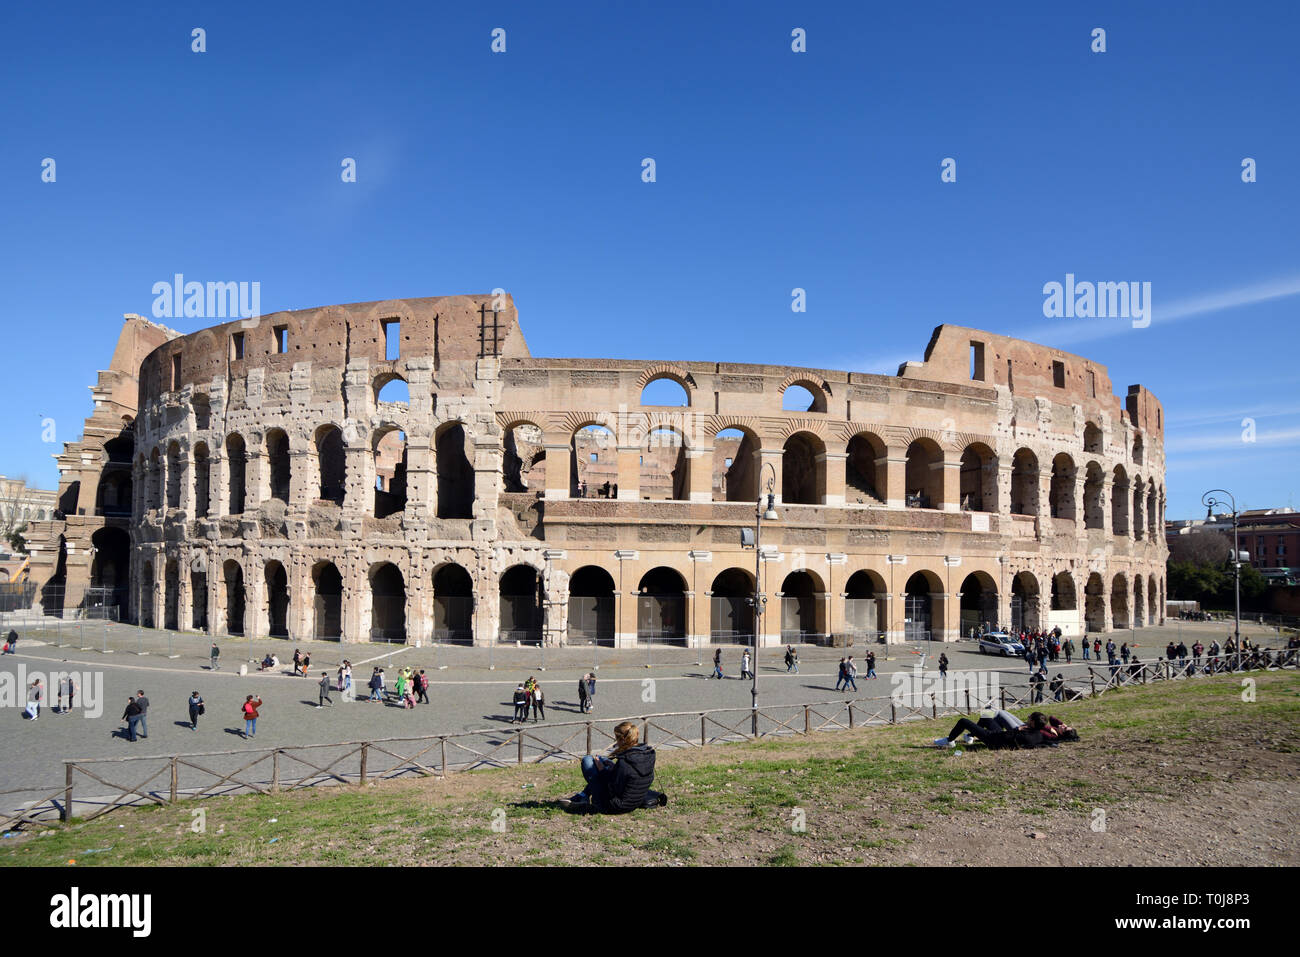 Exterior of the Colosseum, or Coliseum, or Flavian Amphitheatre (70-80AD) Roman Monument, Rome, Italy - Stock Image